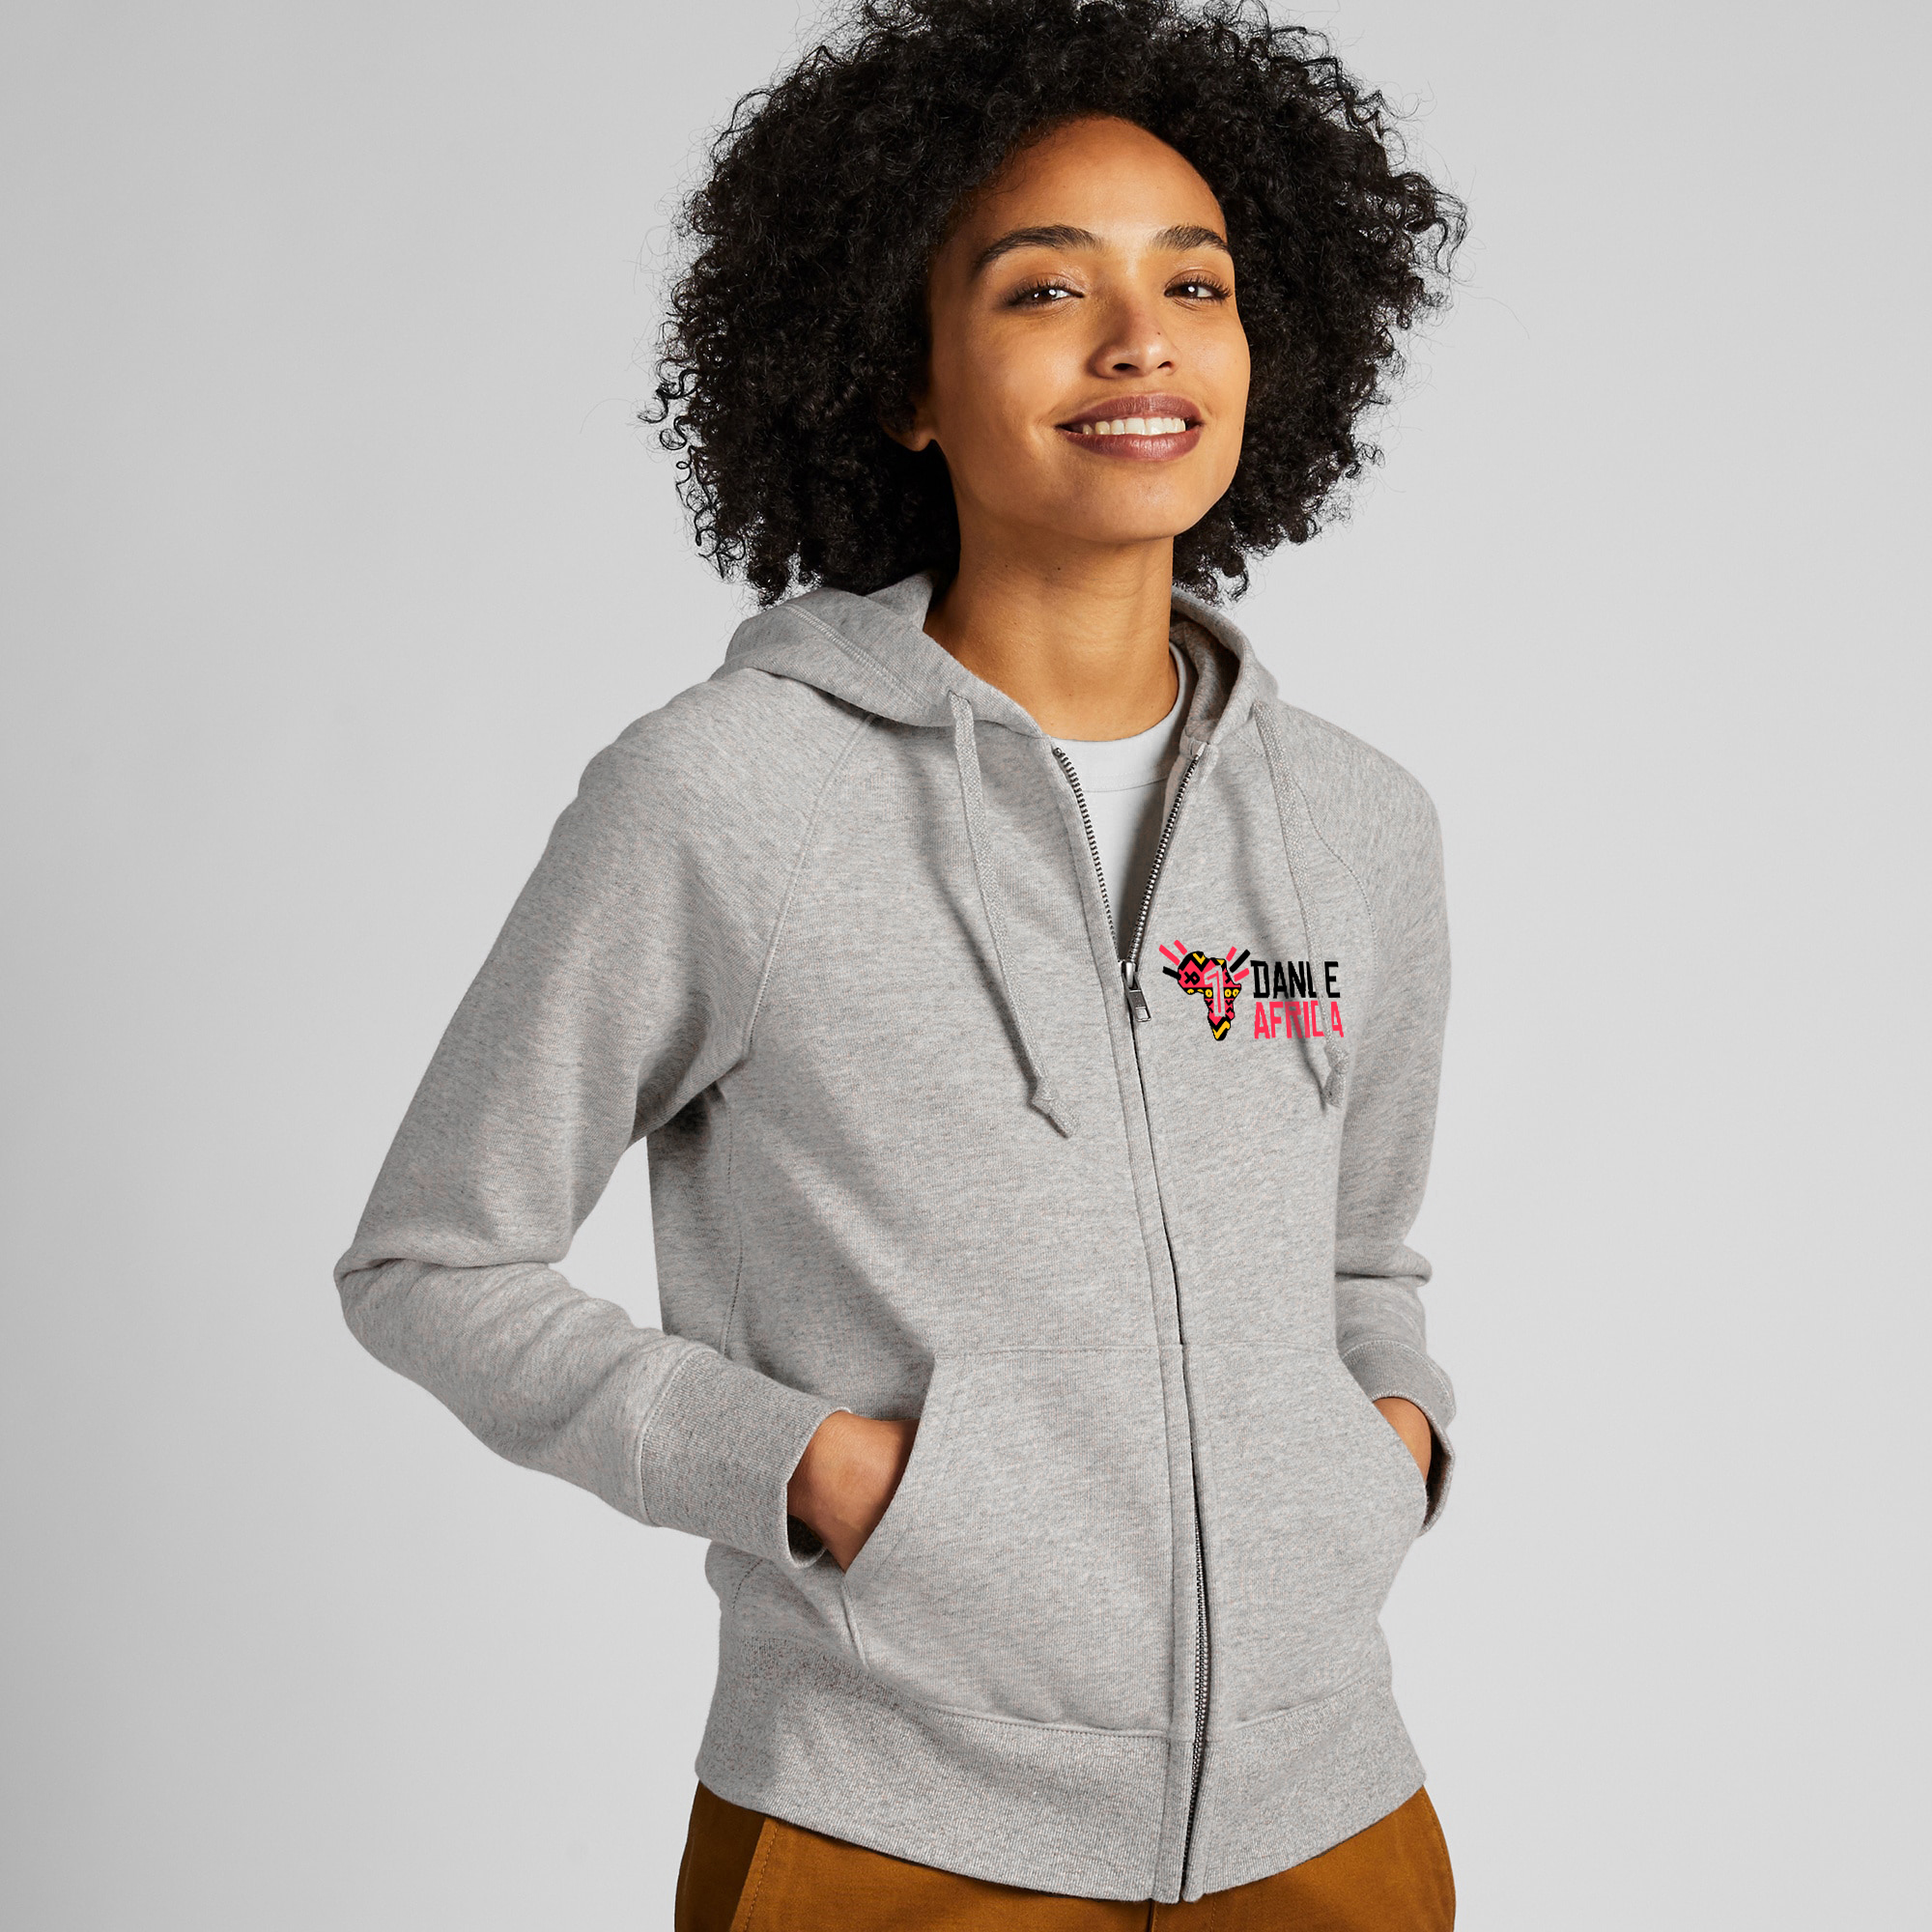 1DA Unisex Grey Zip Up